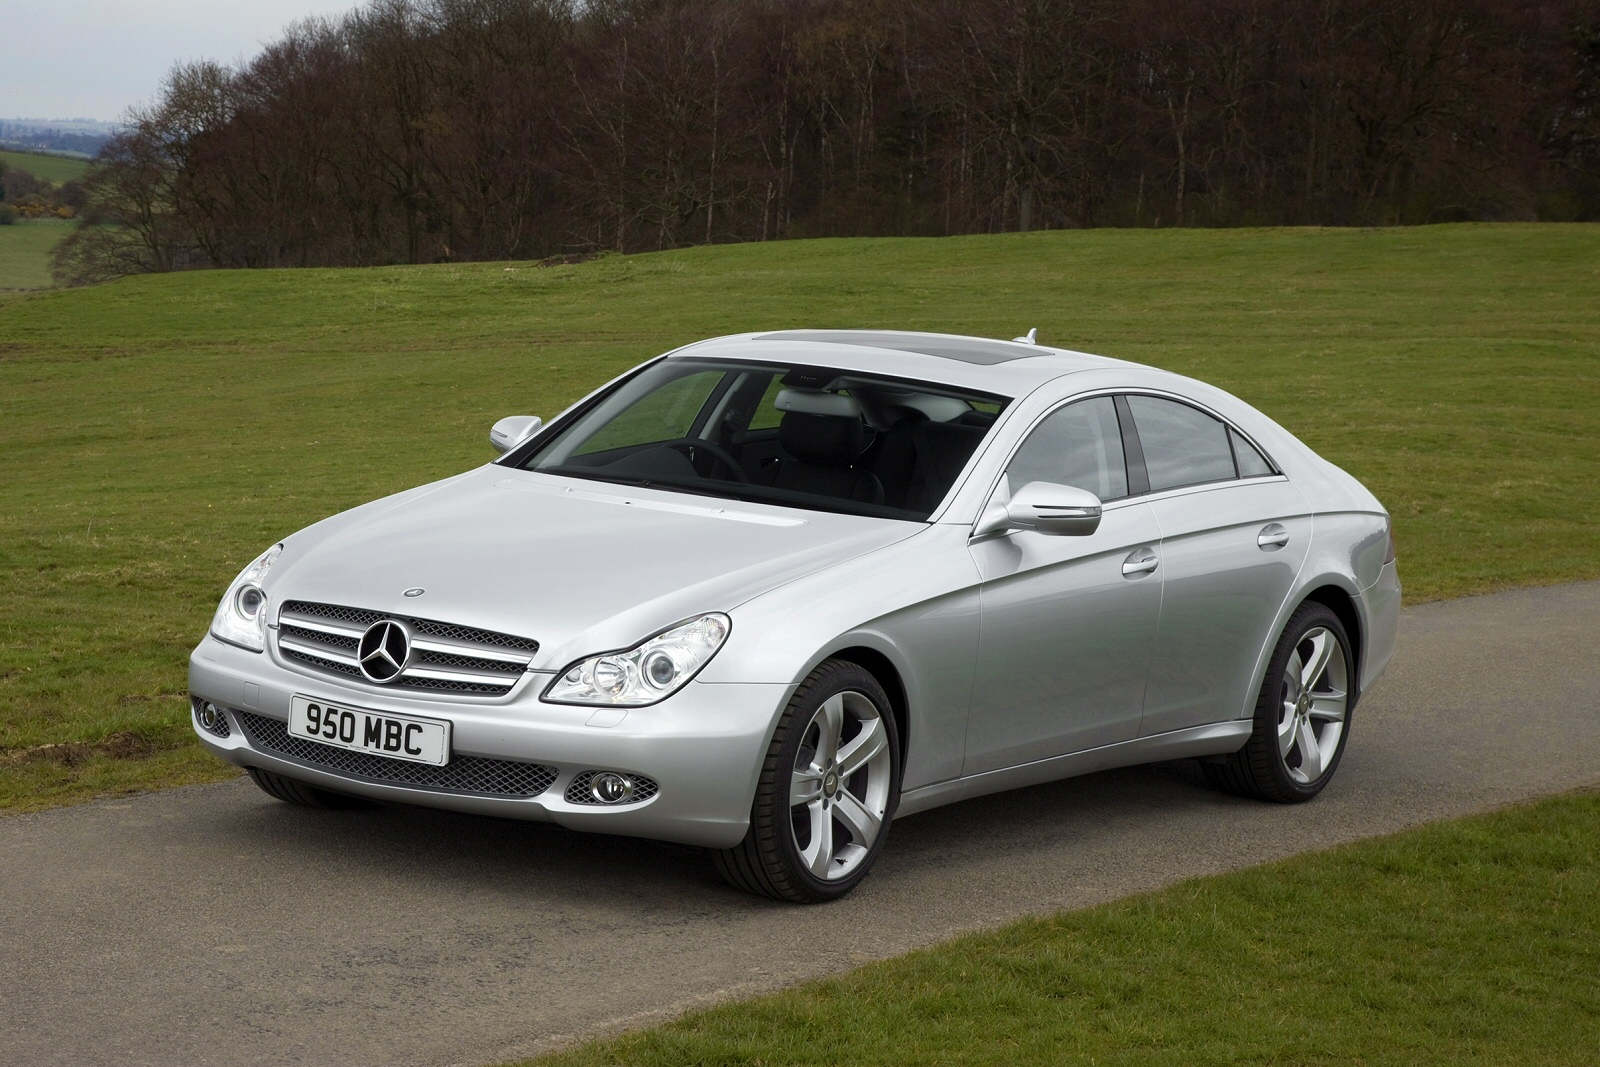 merc 39 s curve ball mercedes benz cls 2005 2010 range independent used review ref 806 208525. Black Bedroom Furniture Sets. Home Design Ideas